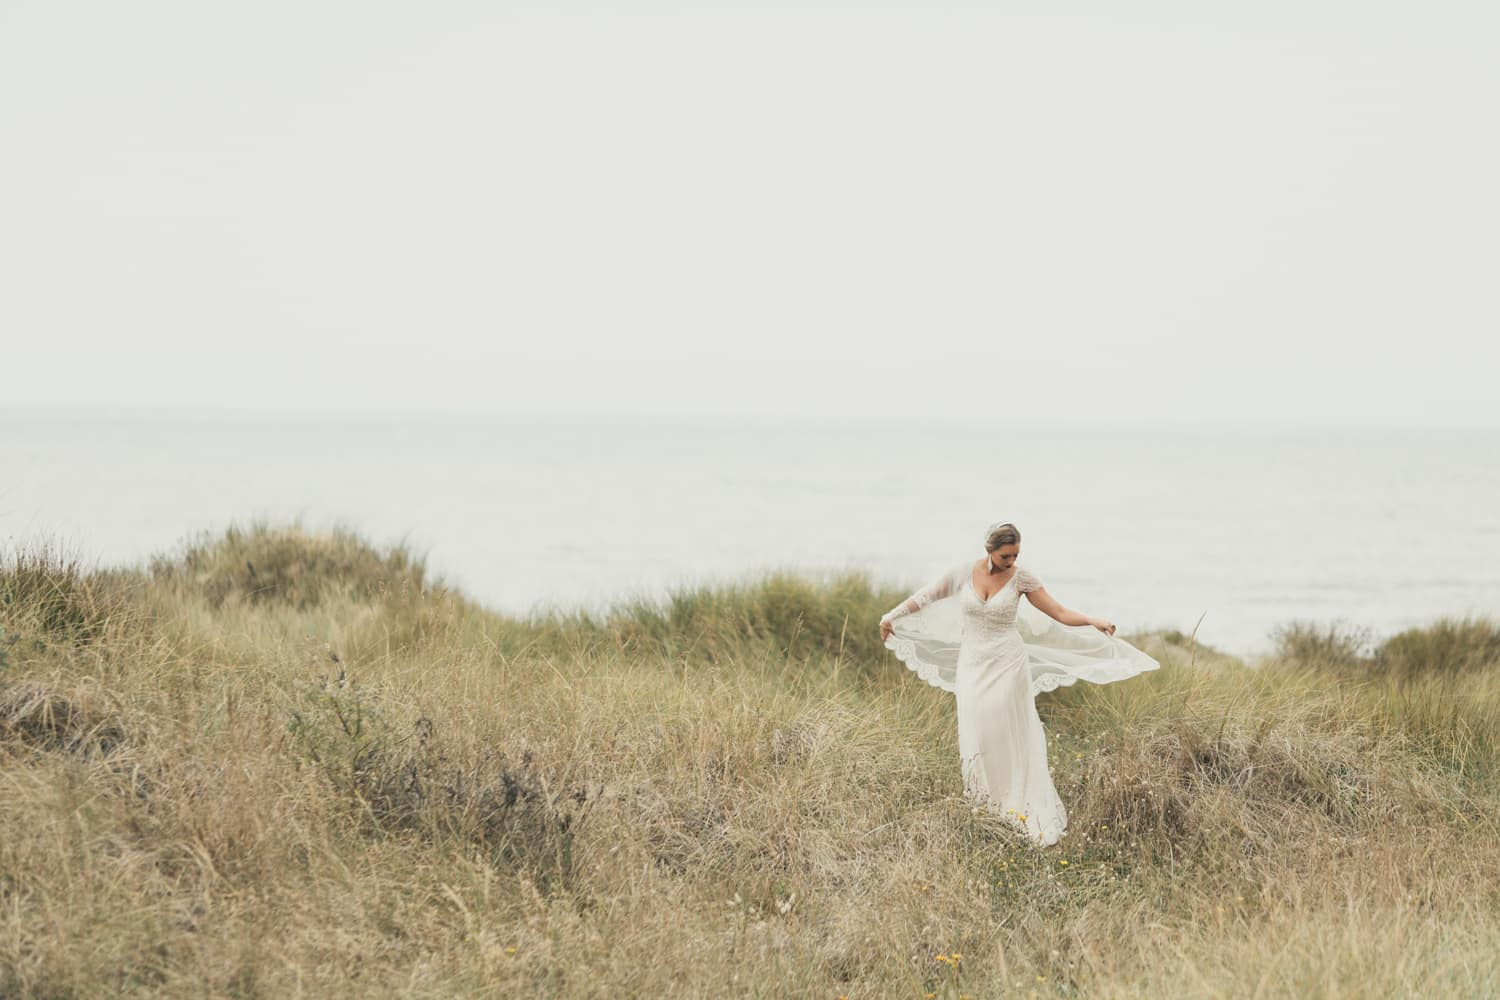 Style Tips for the Bohemian Summer Wedding of your Dreams